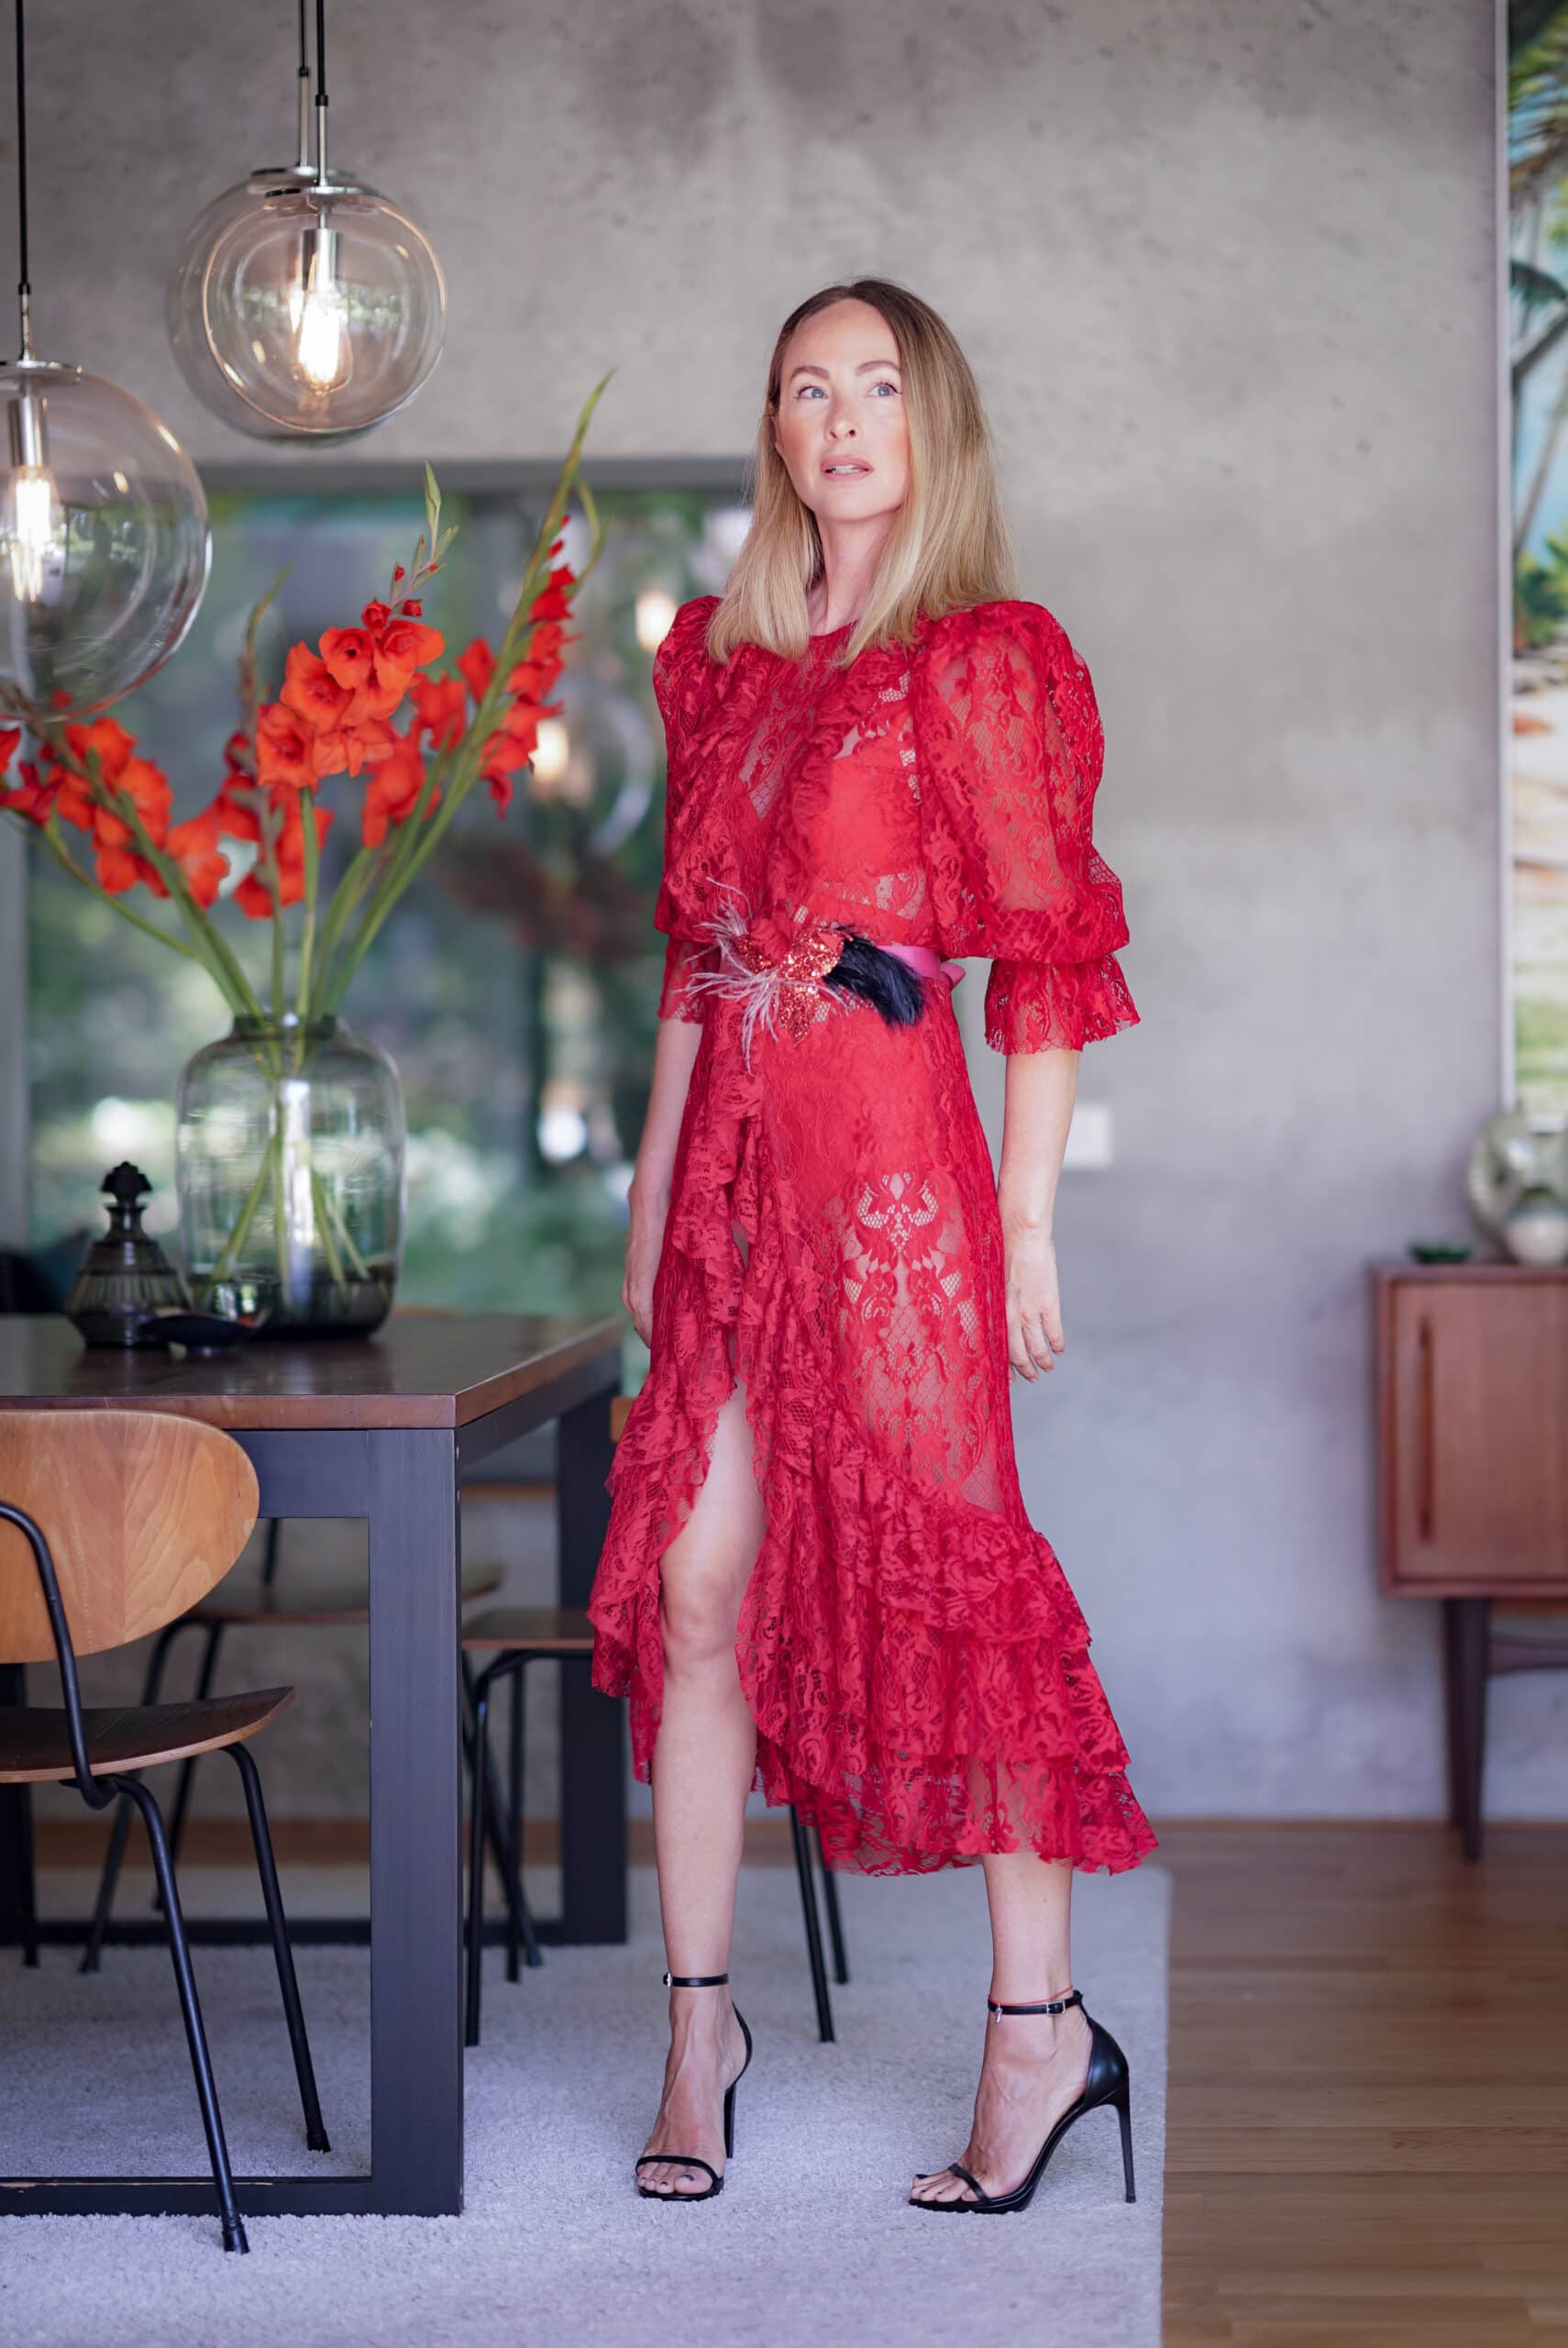 fashion faszination: das rote kleid - rebel in a new dress